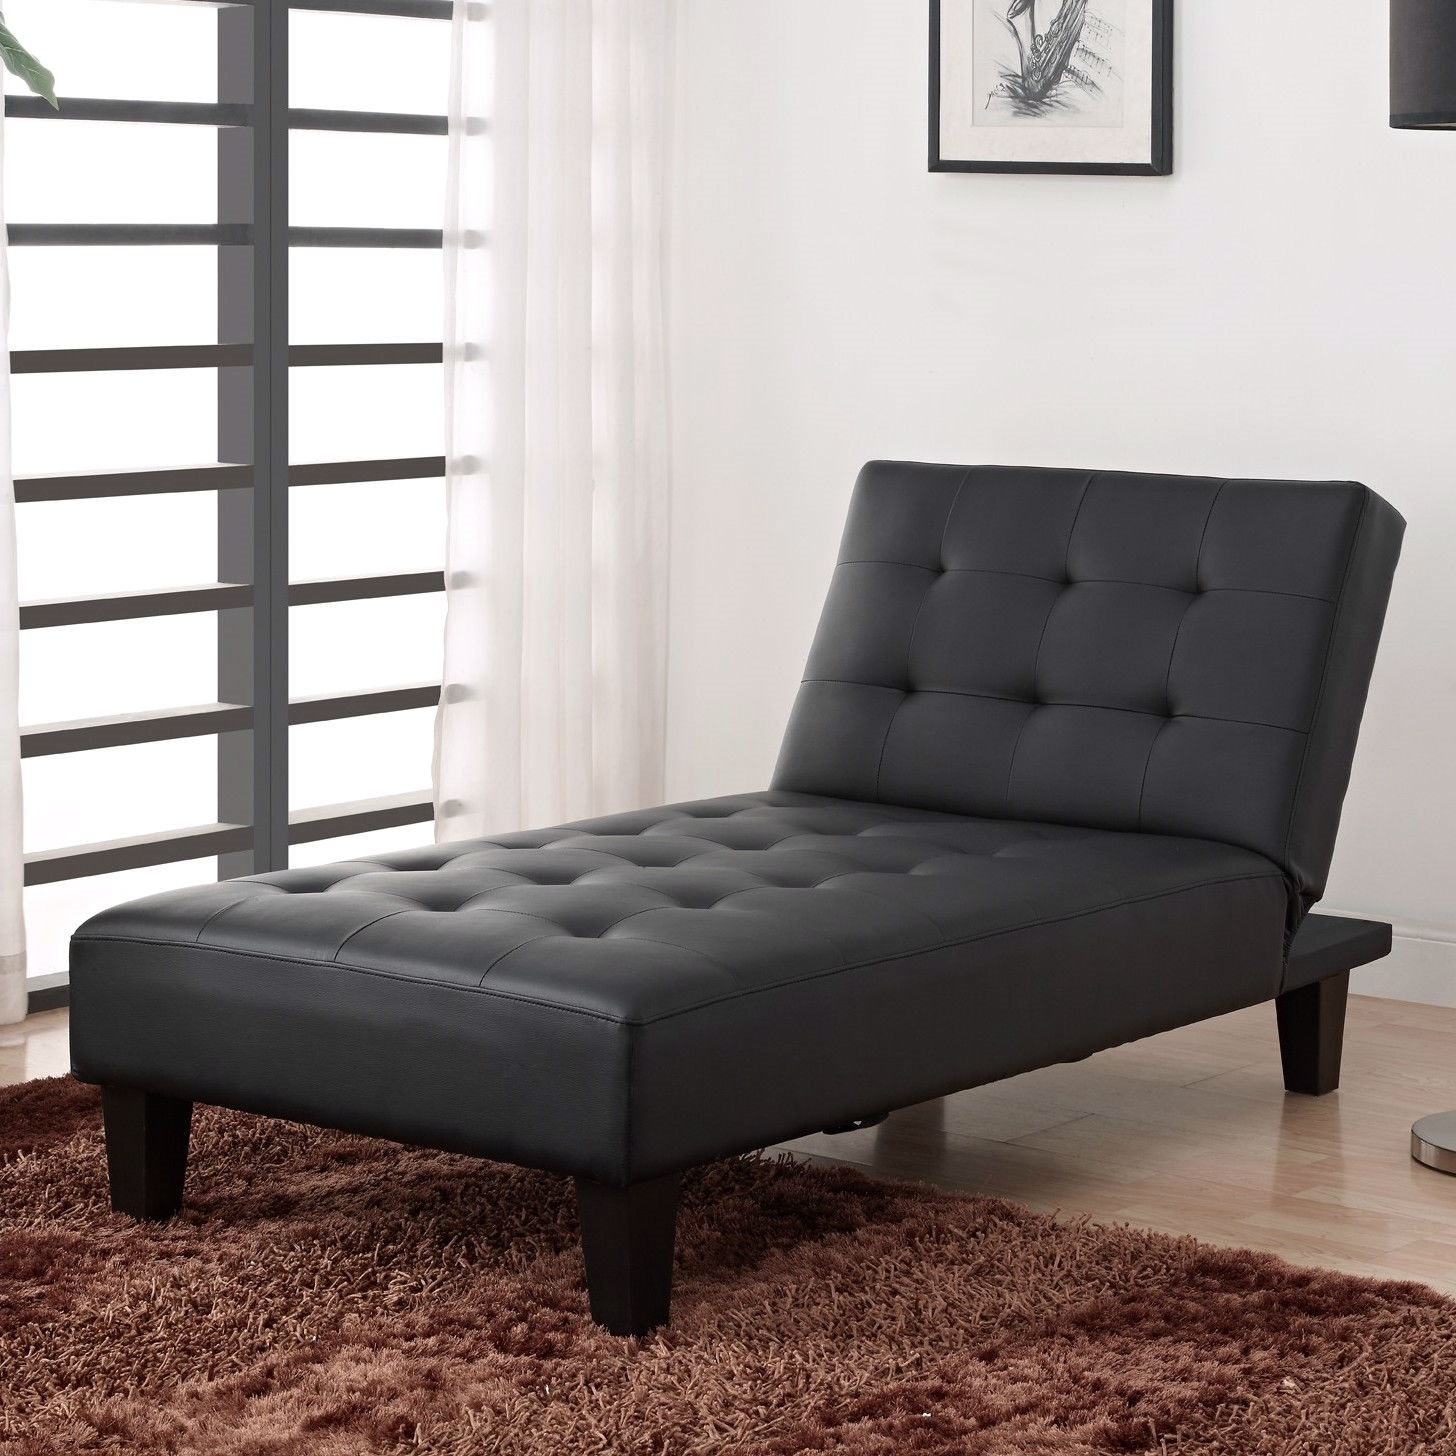 Perfect Black Chaise Lounge Style — Awesome Homes In Best And Newest Black Leather Chaise Lounges (View 11 of 15)